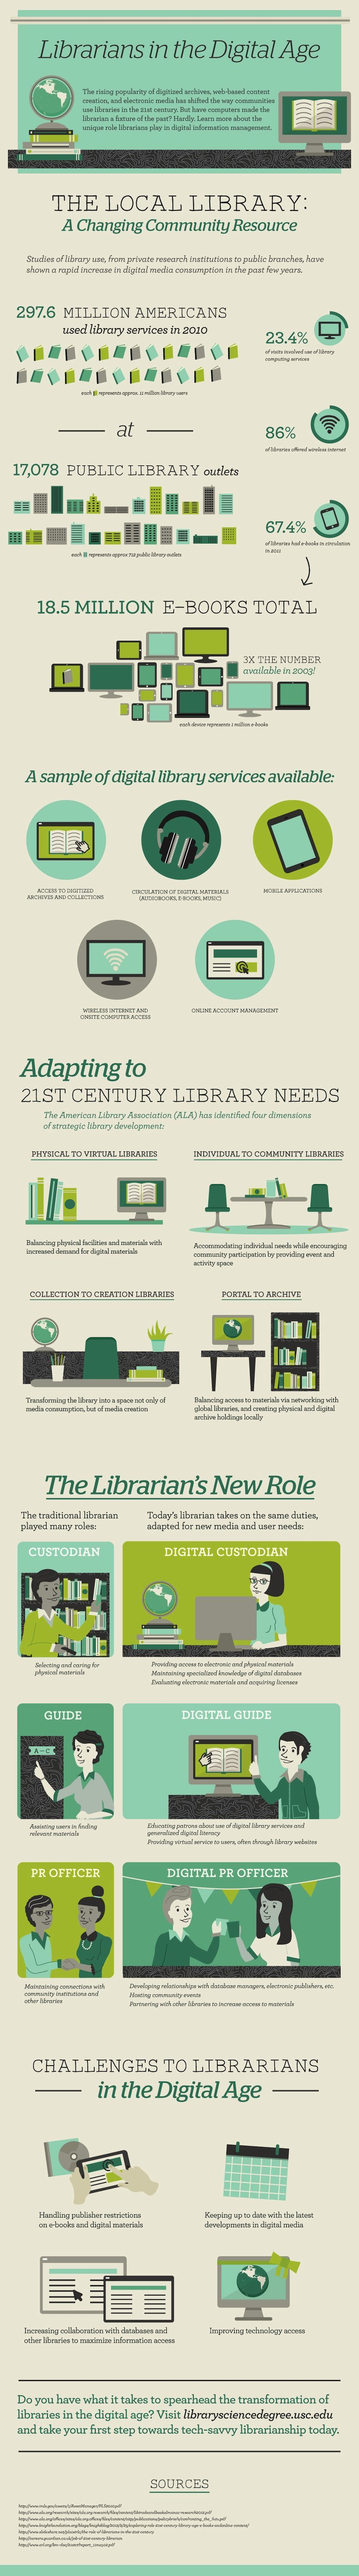 Librarians and libraries in the digital age #infographic